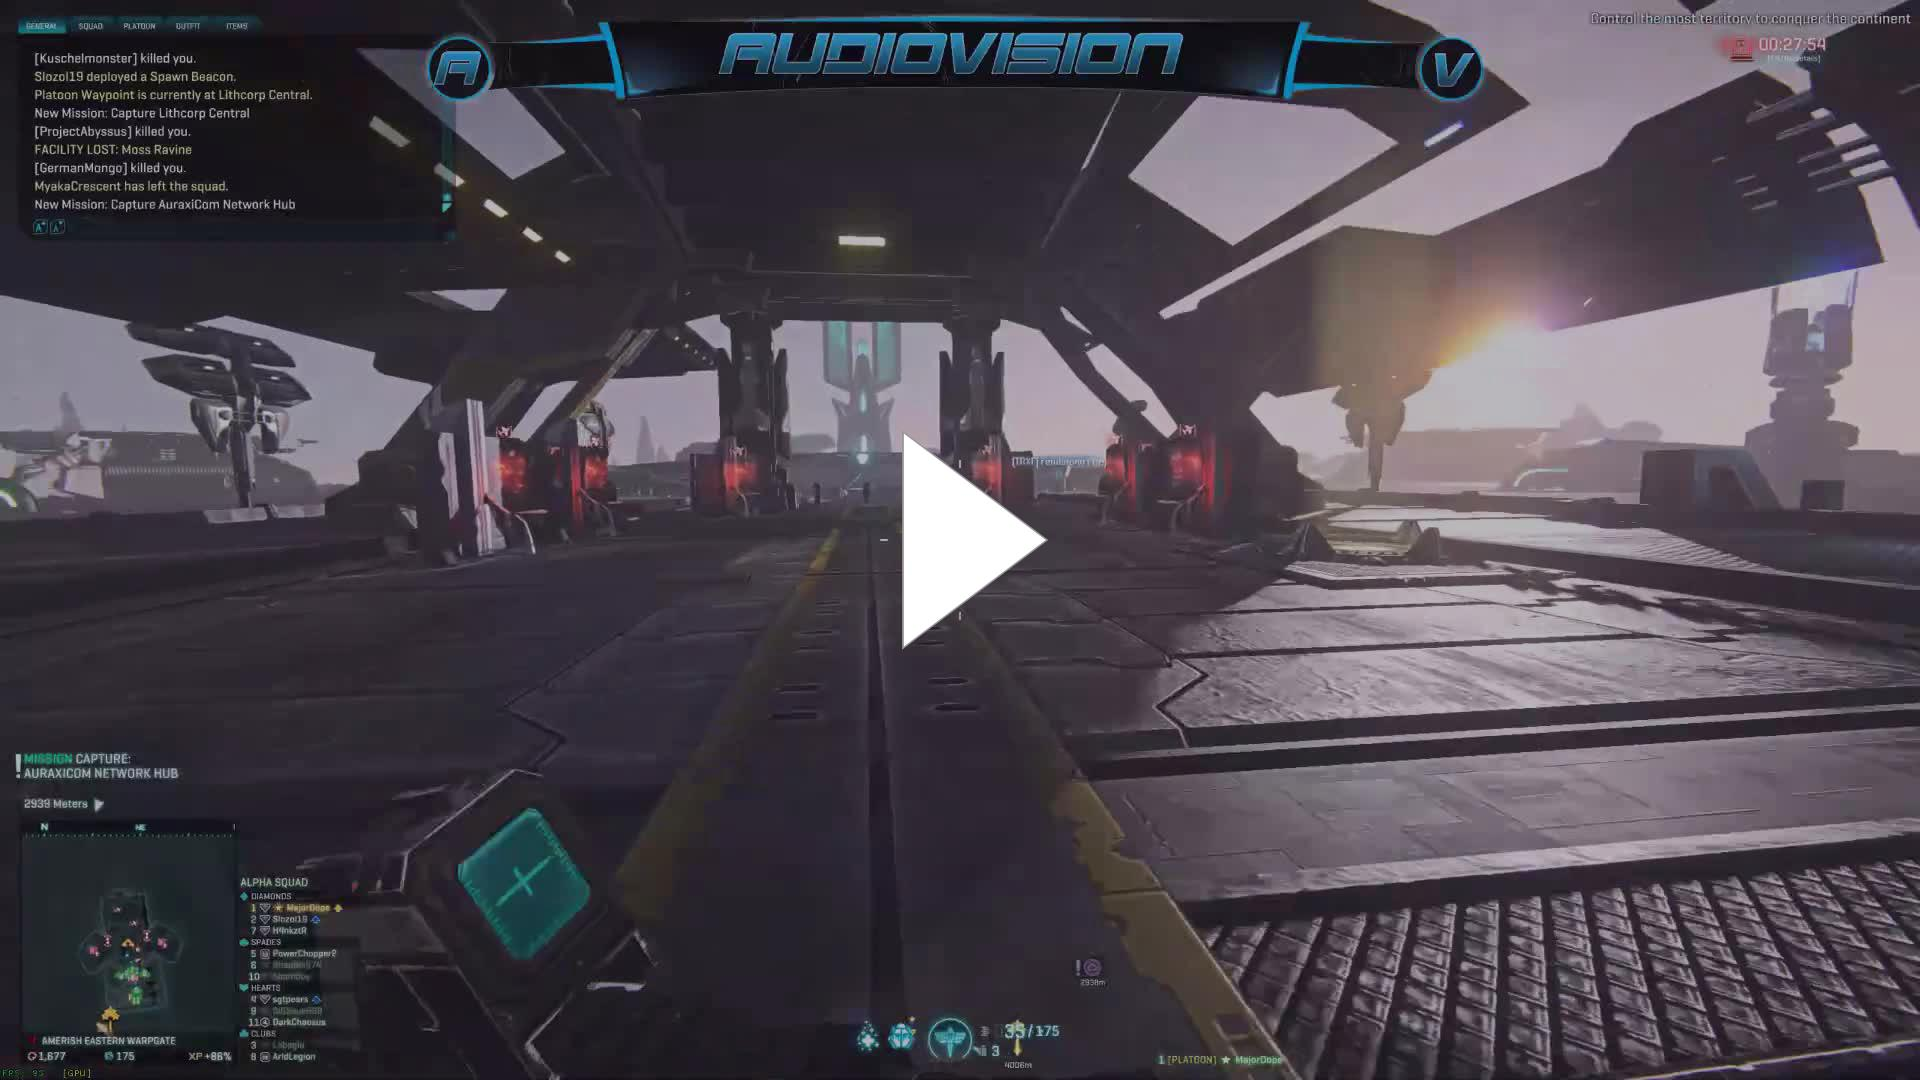 AudioVision - major dope - Twitch